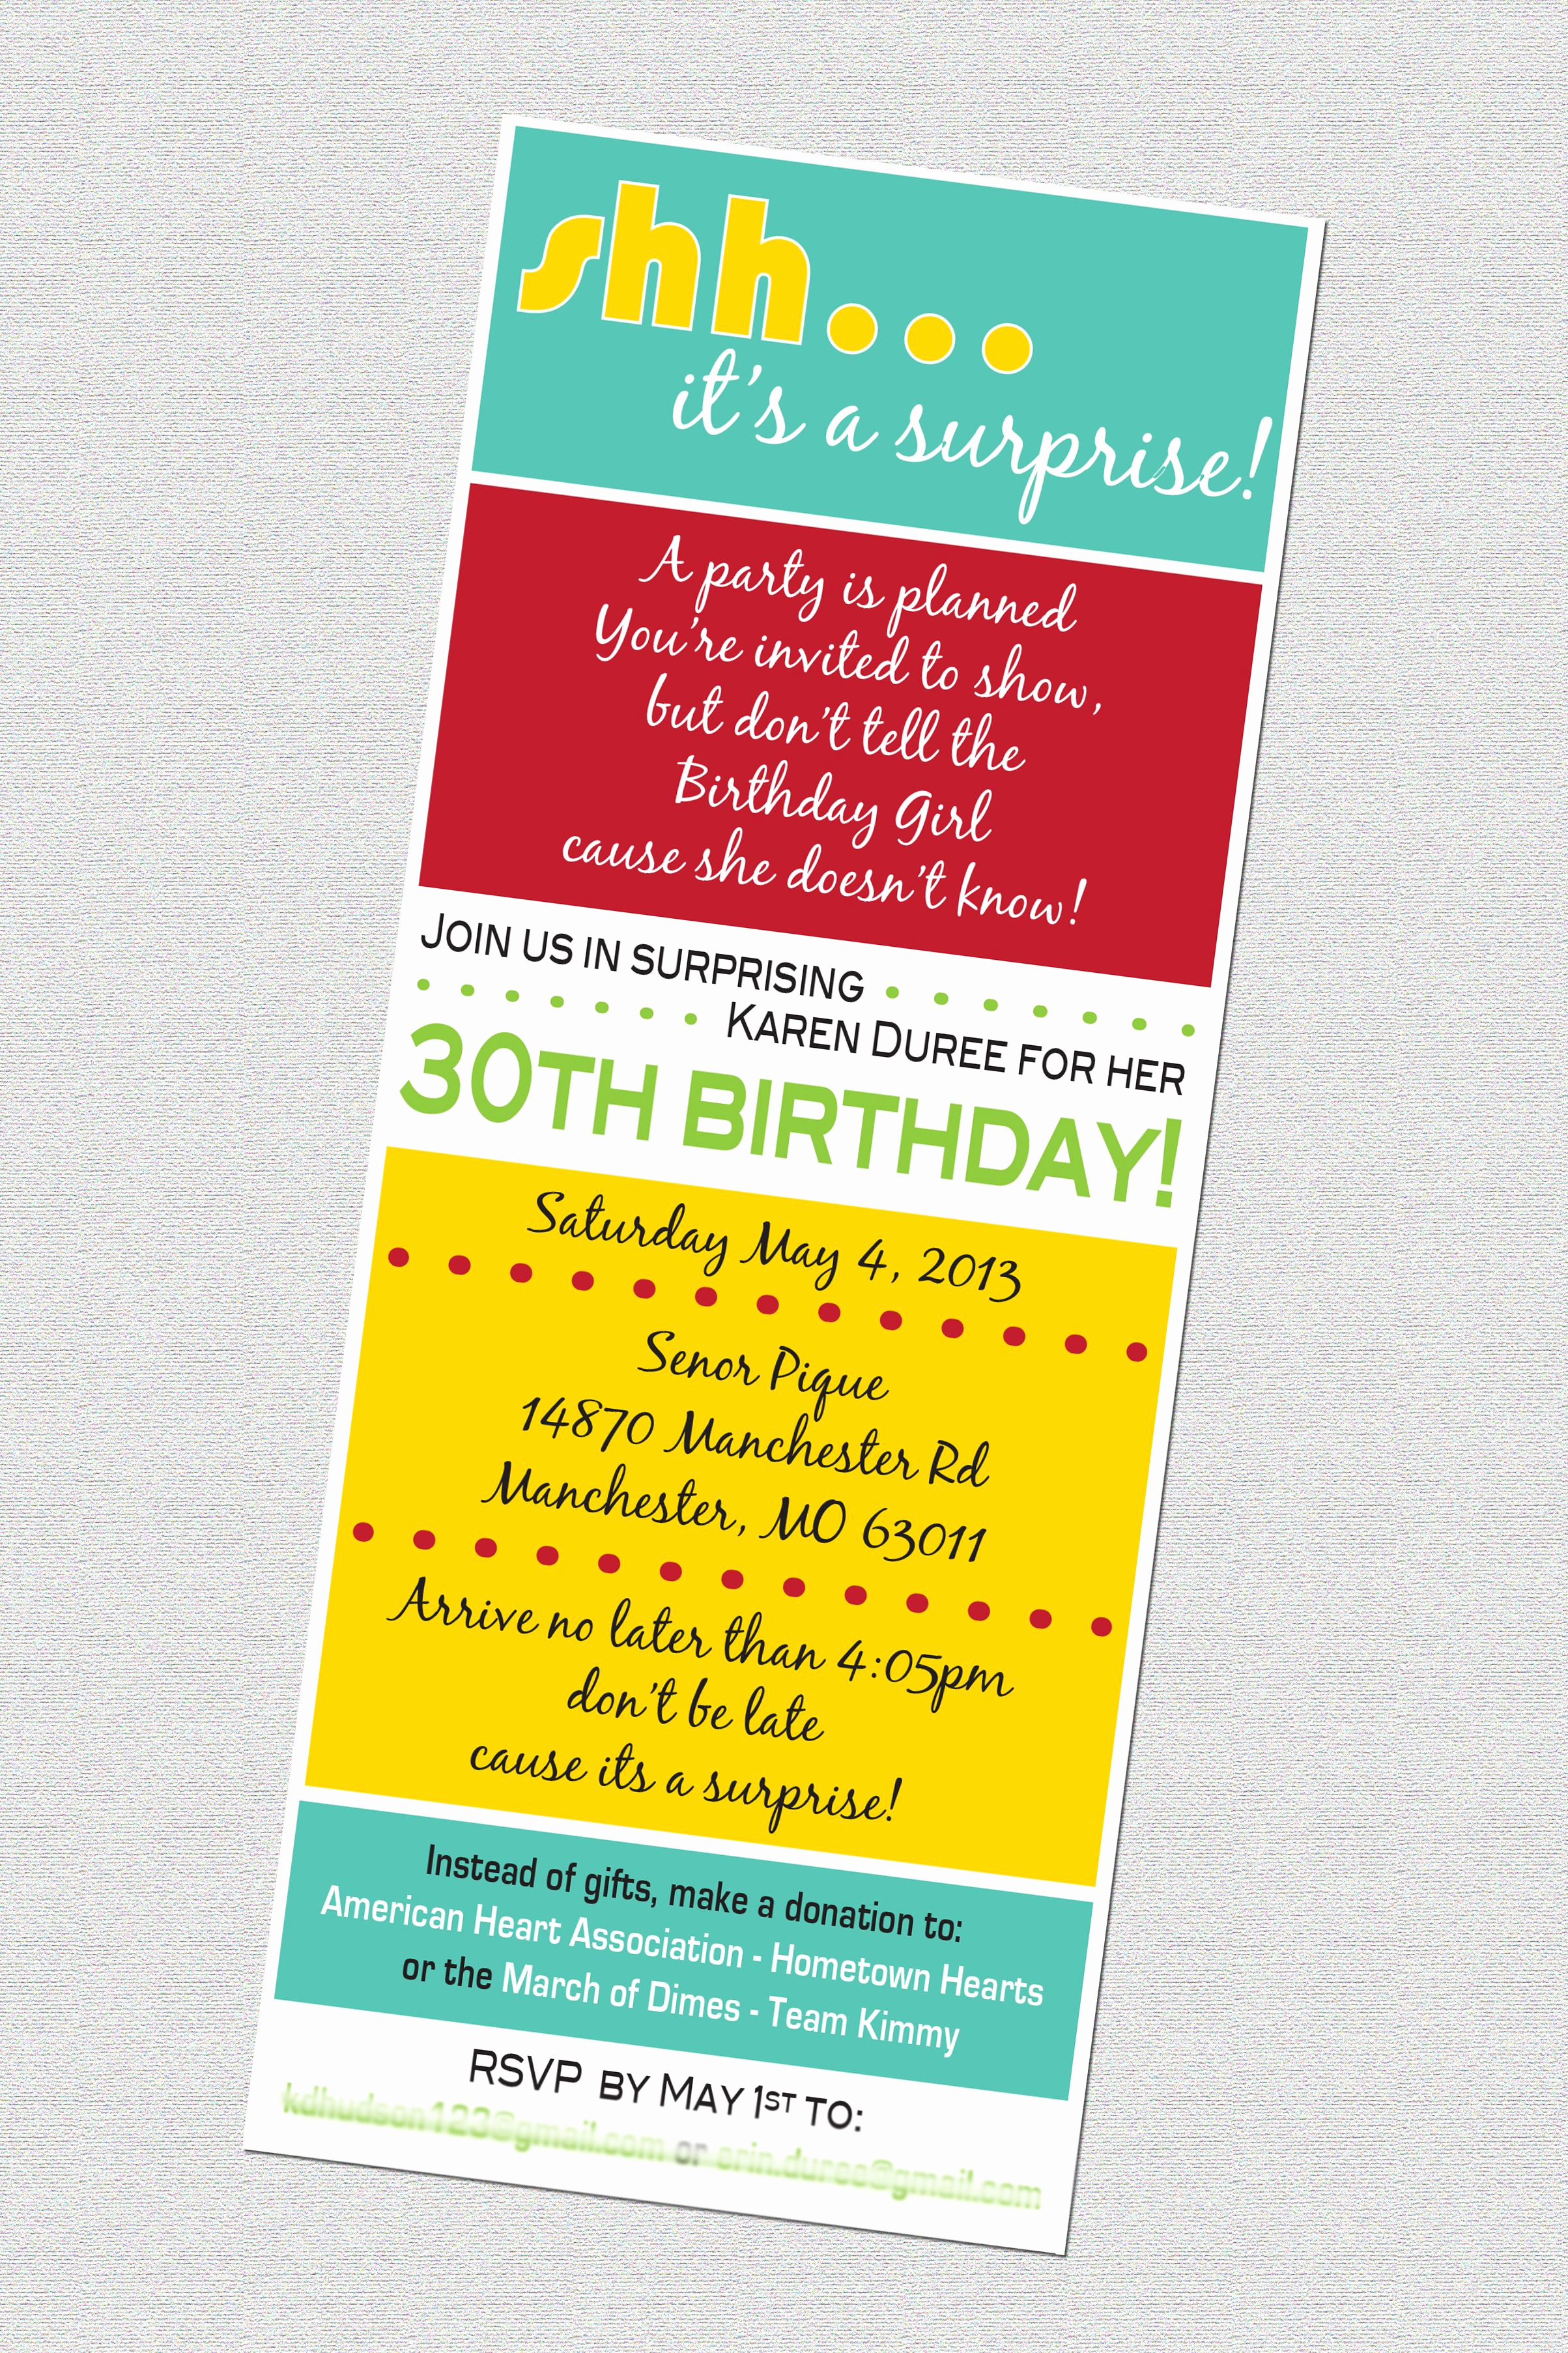 30th Birthday Invitation Ideas Beautiful 30th Birthday Surprise Party Invitation